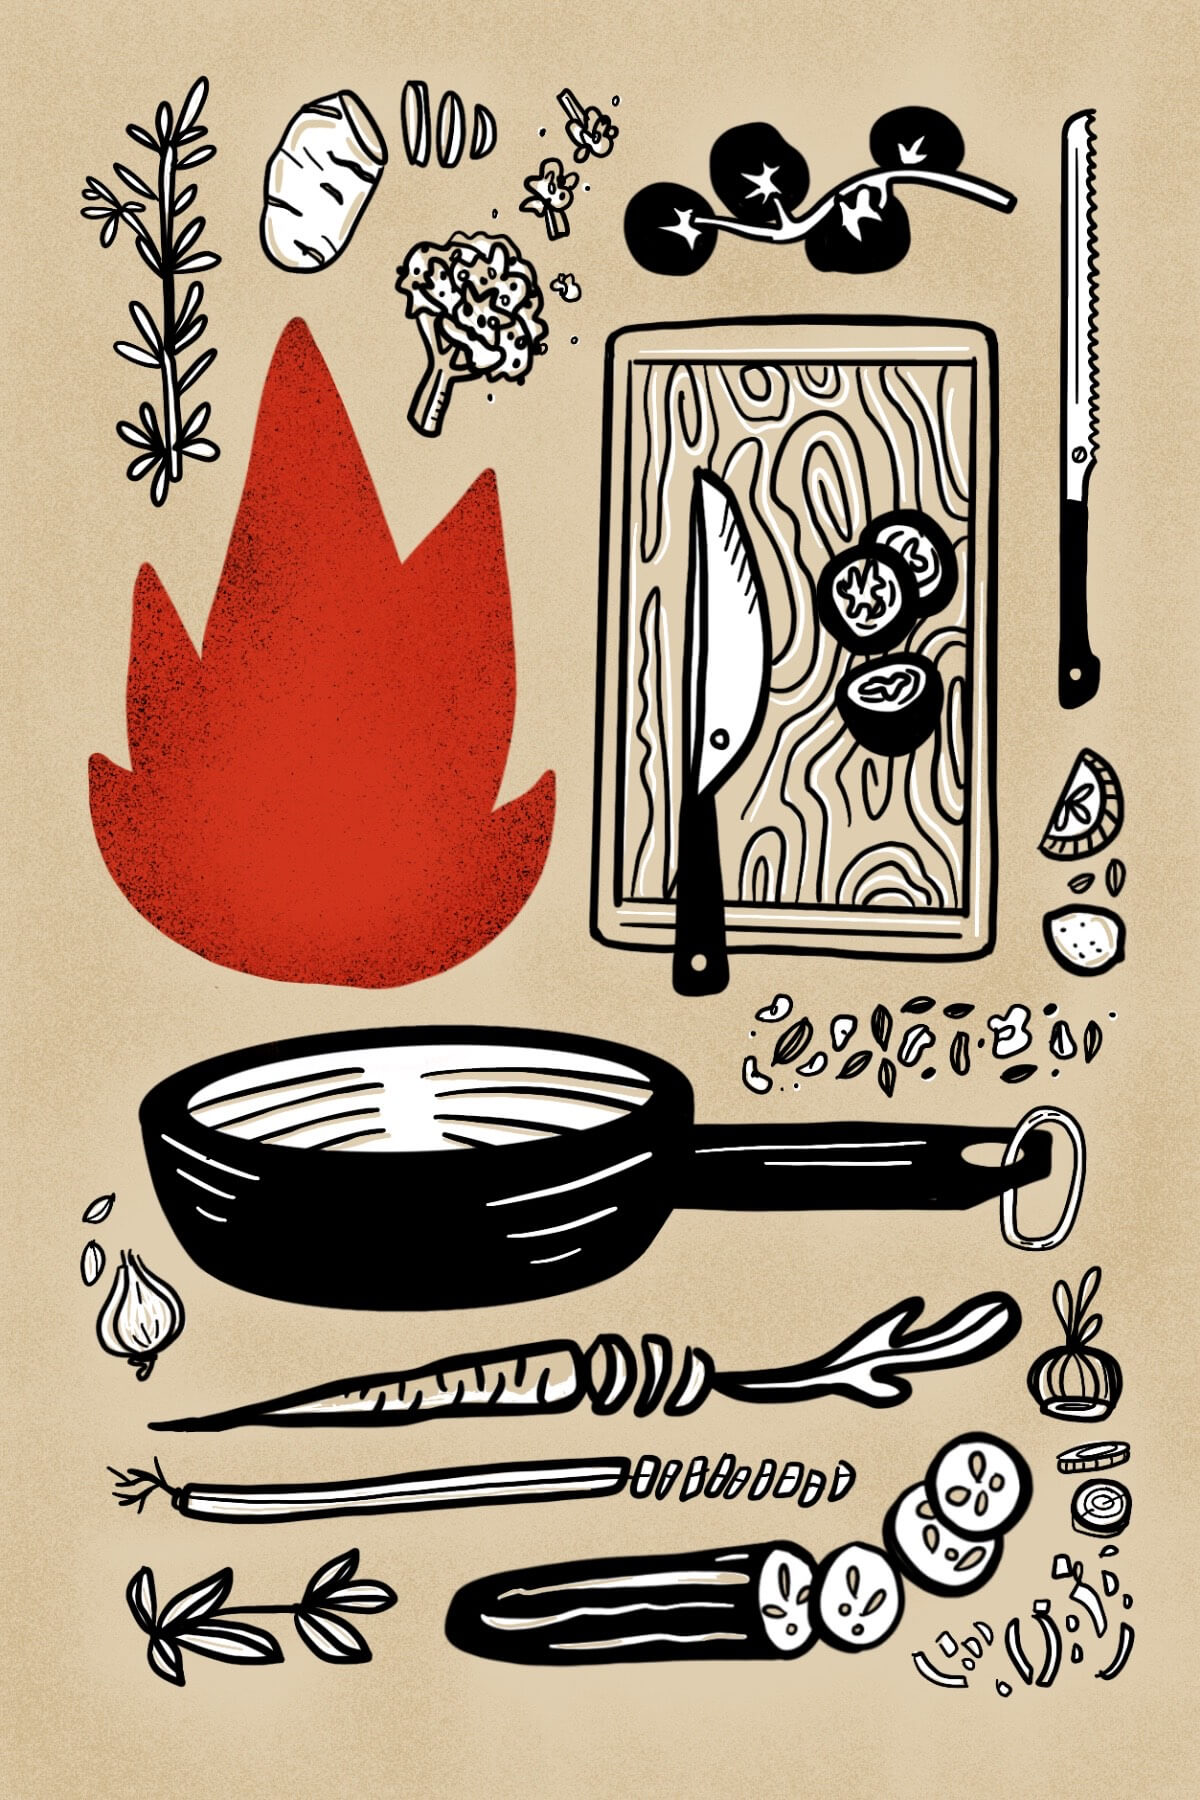 An illustration that features various elements that are found in kitchens. Vegetables, herbs, a frying pan, a cutting board and knives can be seen and in the center left there is a colorful red flame.